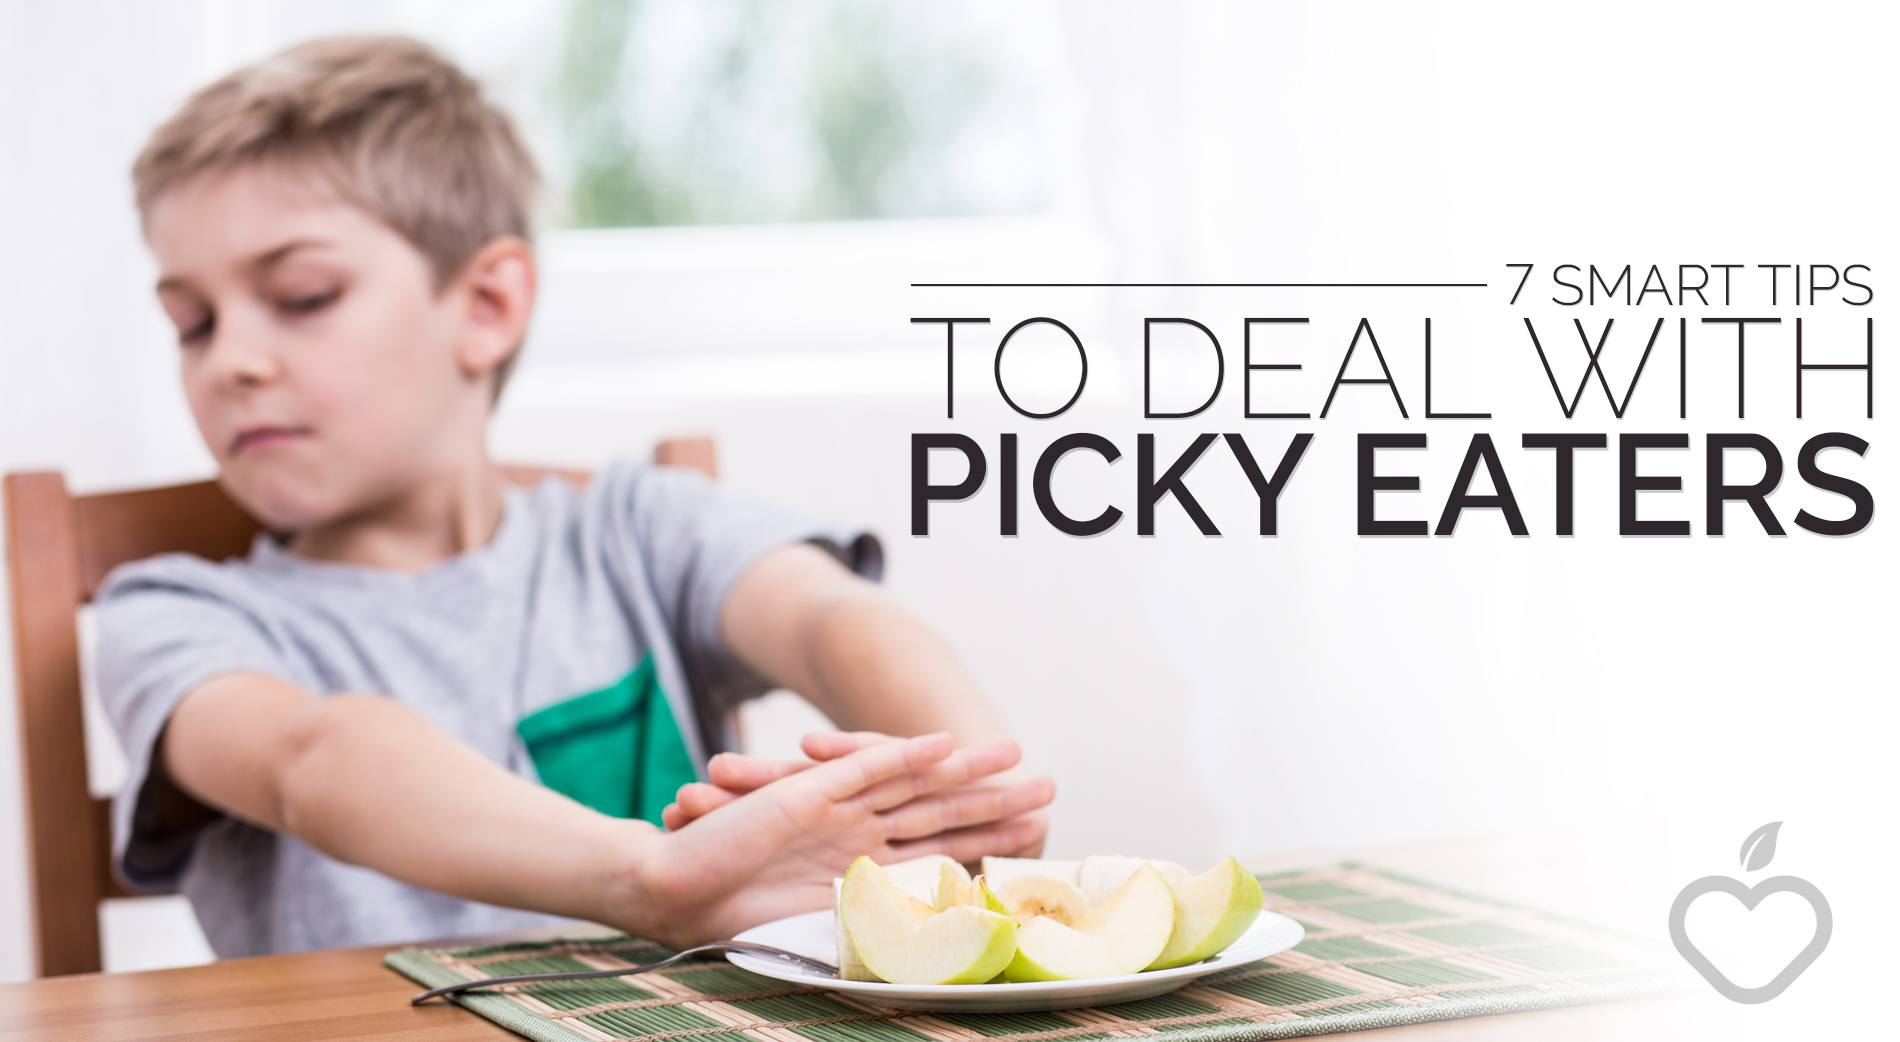 Picky Eaters Image Design 1 - 7 Smart Tips To Deal With Picky Eaters